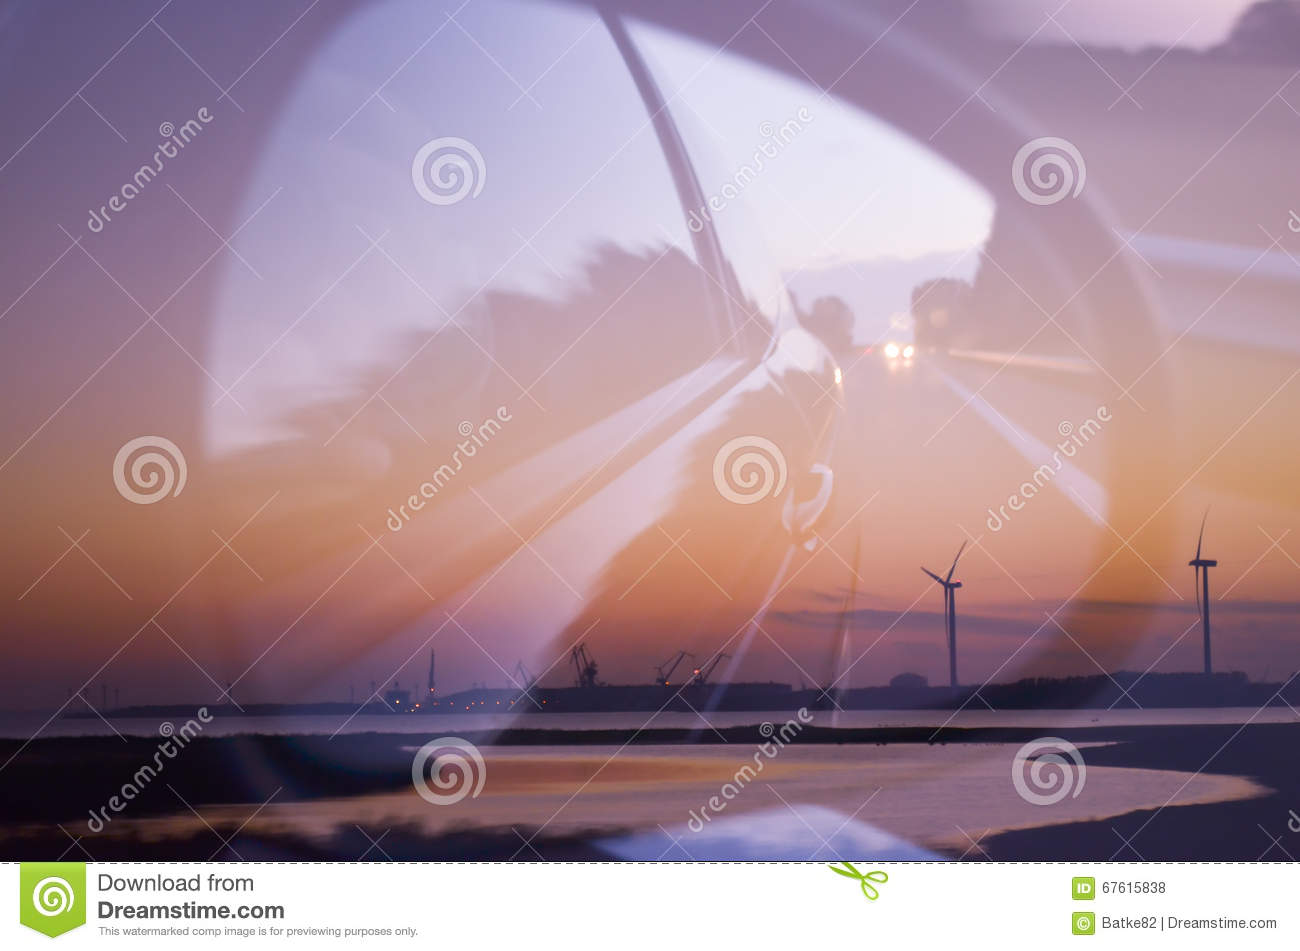 Double exposure of beautiful landscape and car mirror